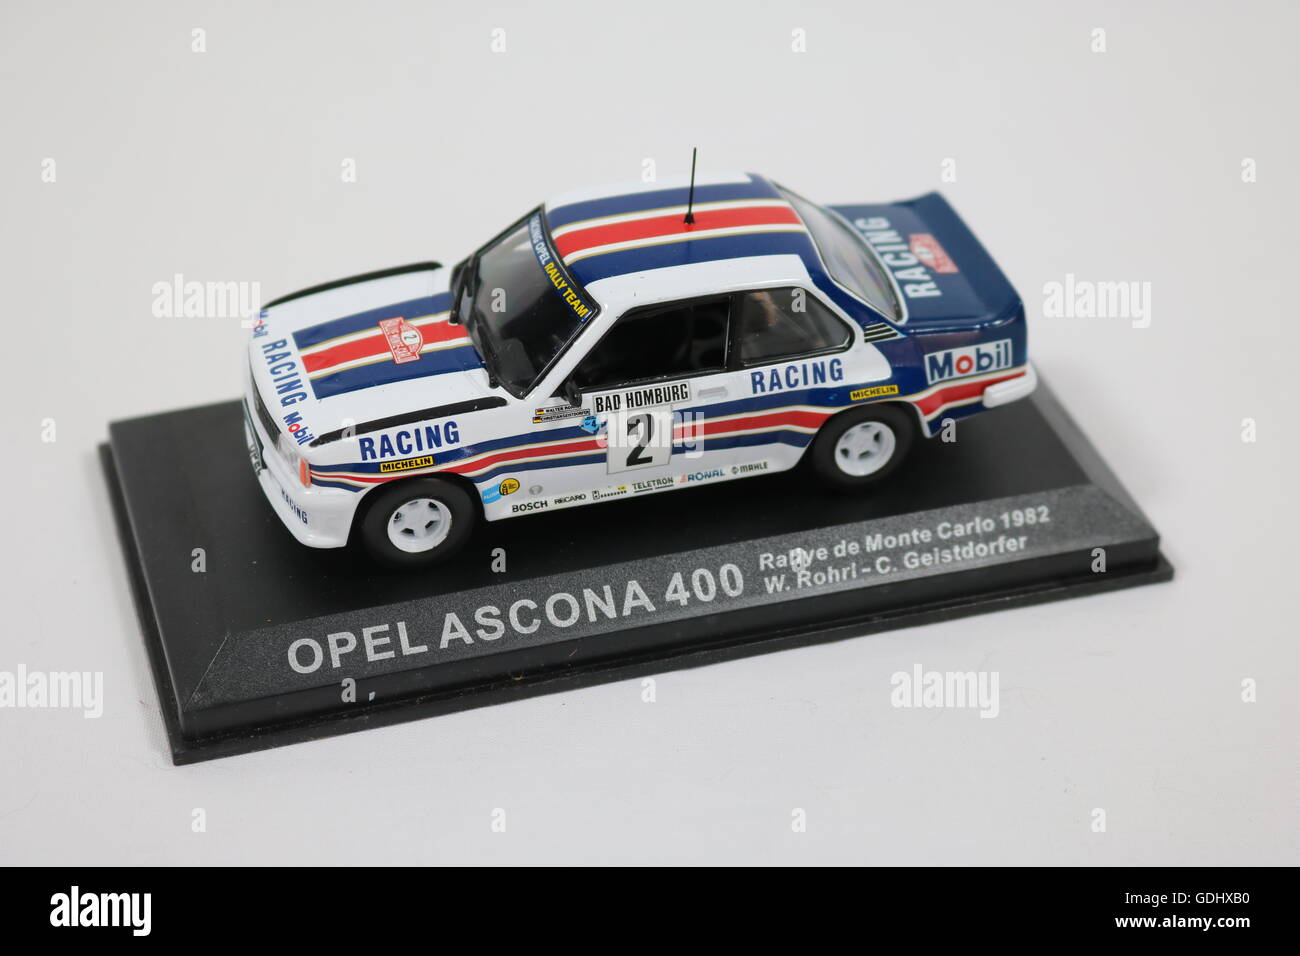 Diecast Model Cars Stock Photos & Diecast Model Cars Stock Images ...